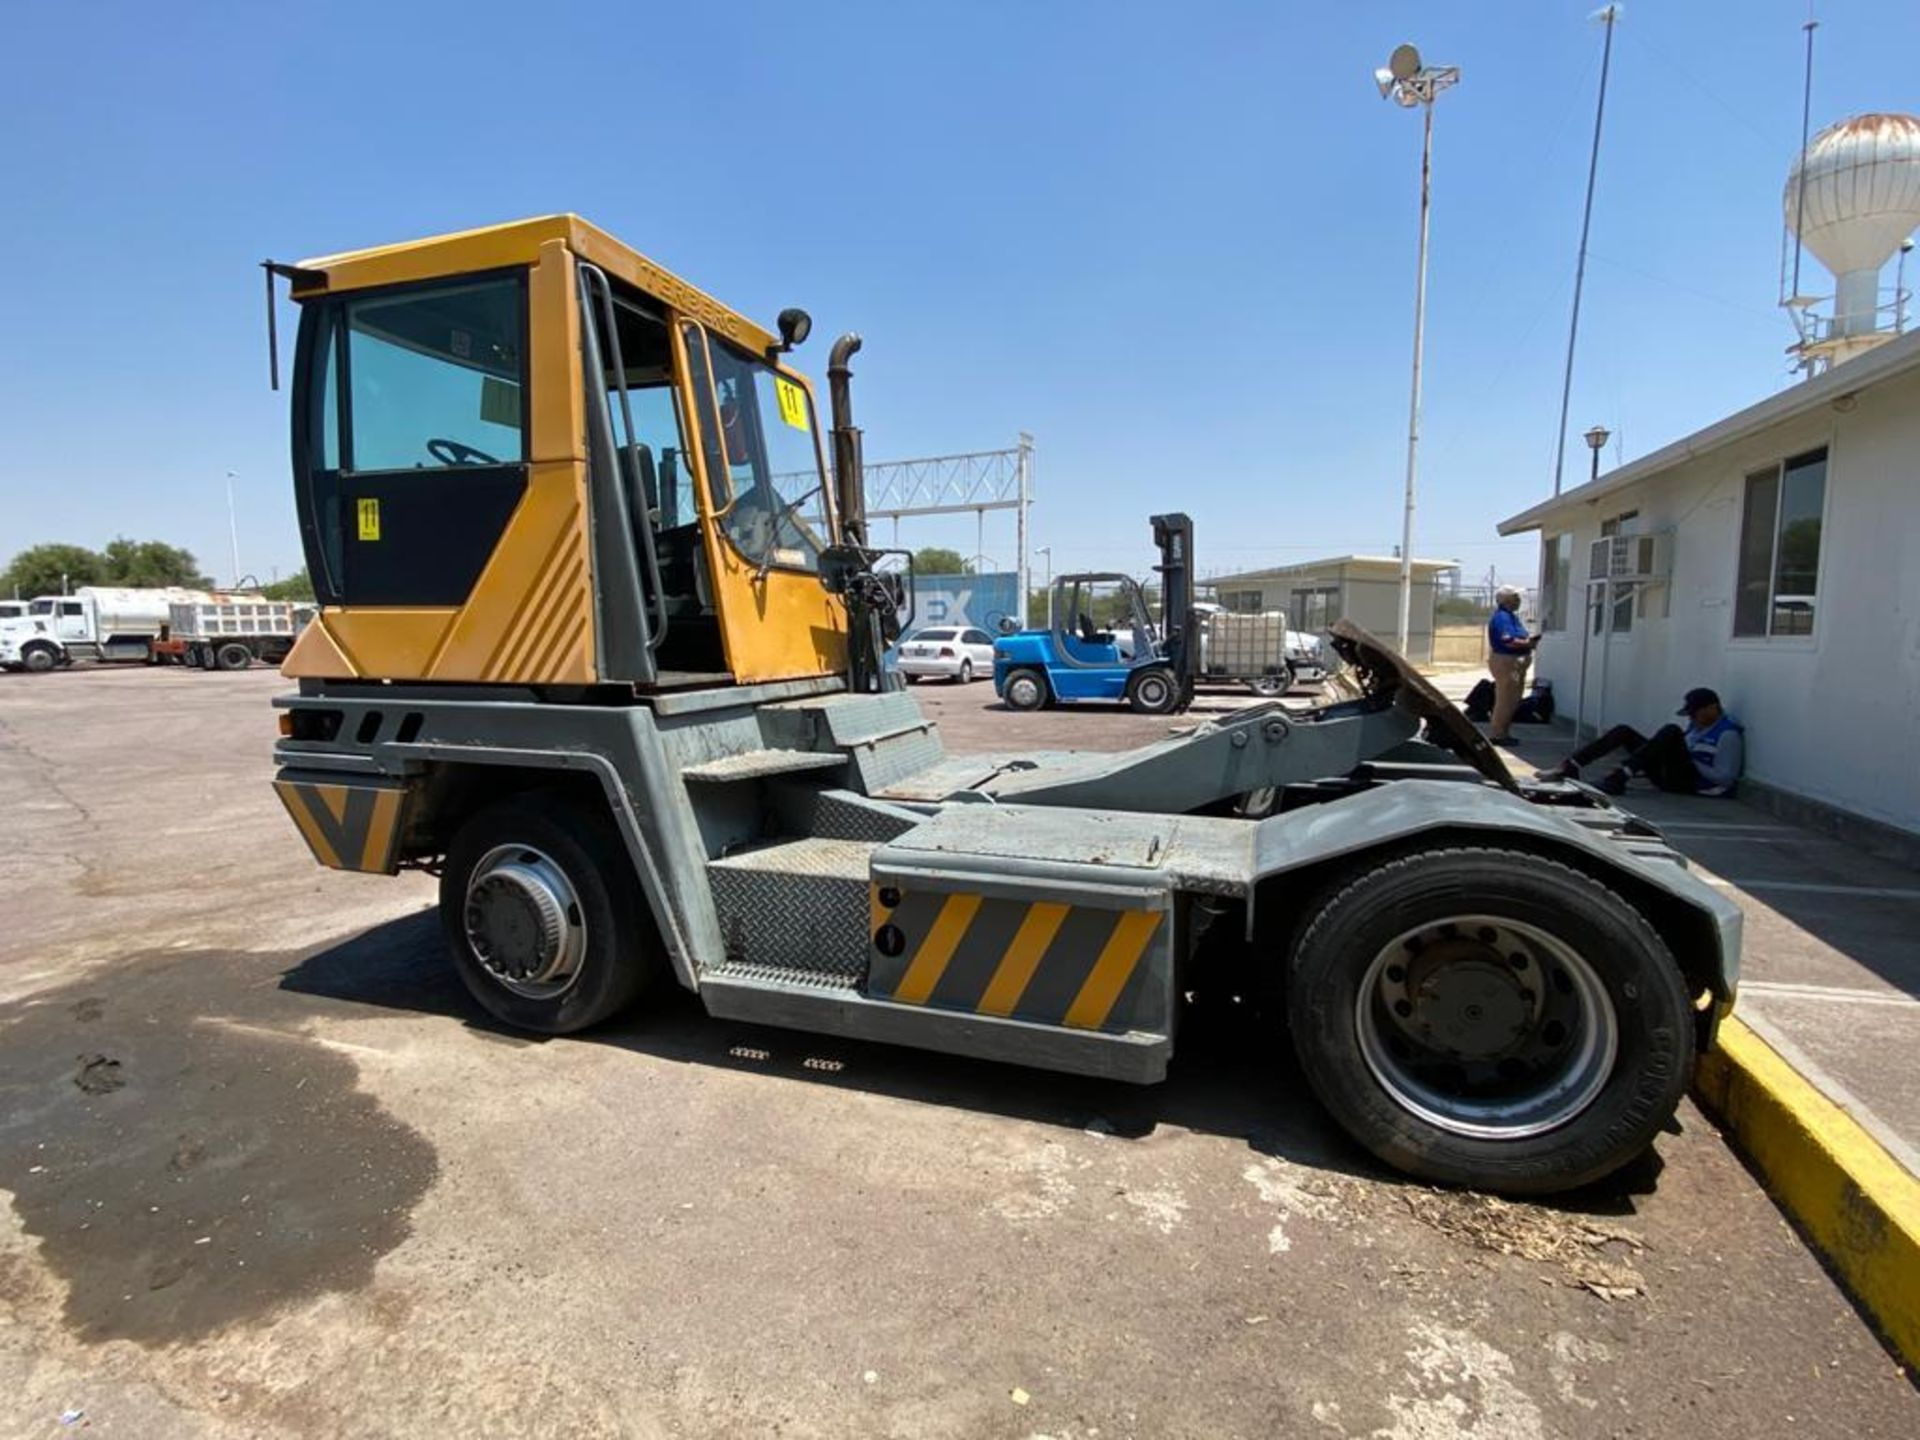 Terberg Capacity 2002 Terminal Tractor, automatic transmission, with Volvo motor - Image 18 of 57